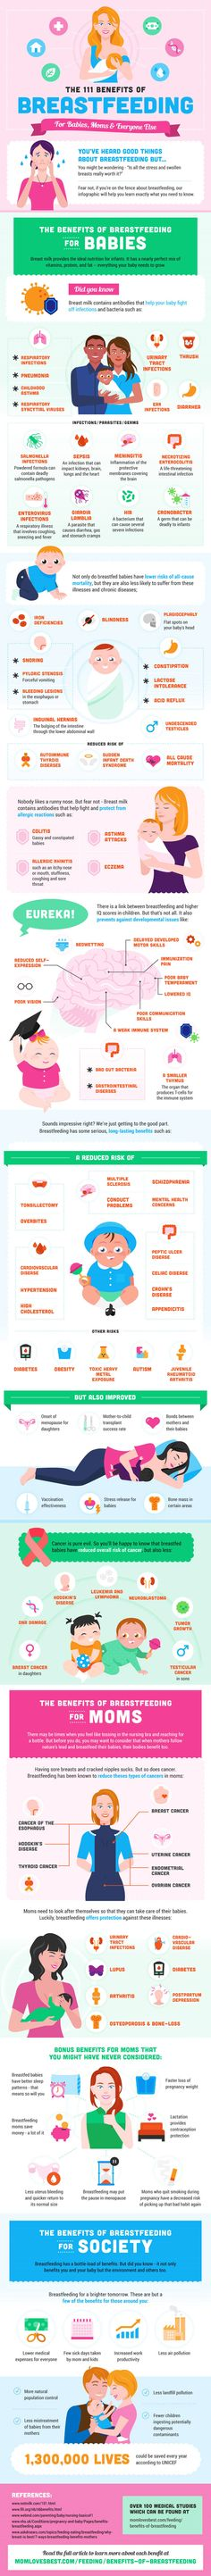 Advantages of Breastfeeding for Mother Infographic. Topic: nursing, breast milk, lactating mom, baby care, newborn infant.